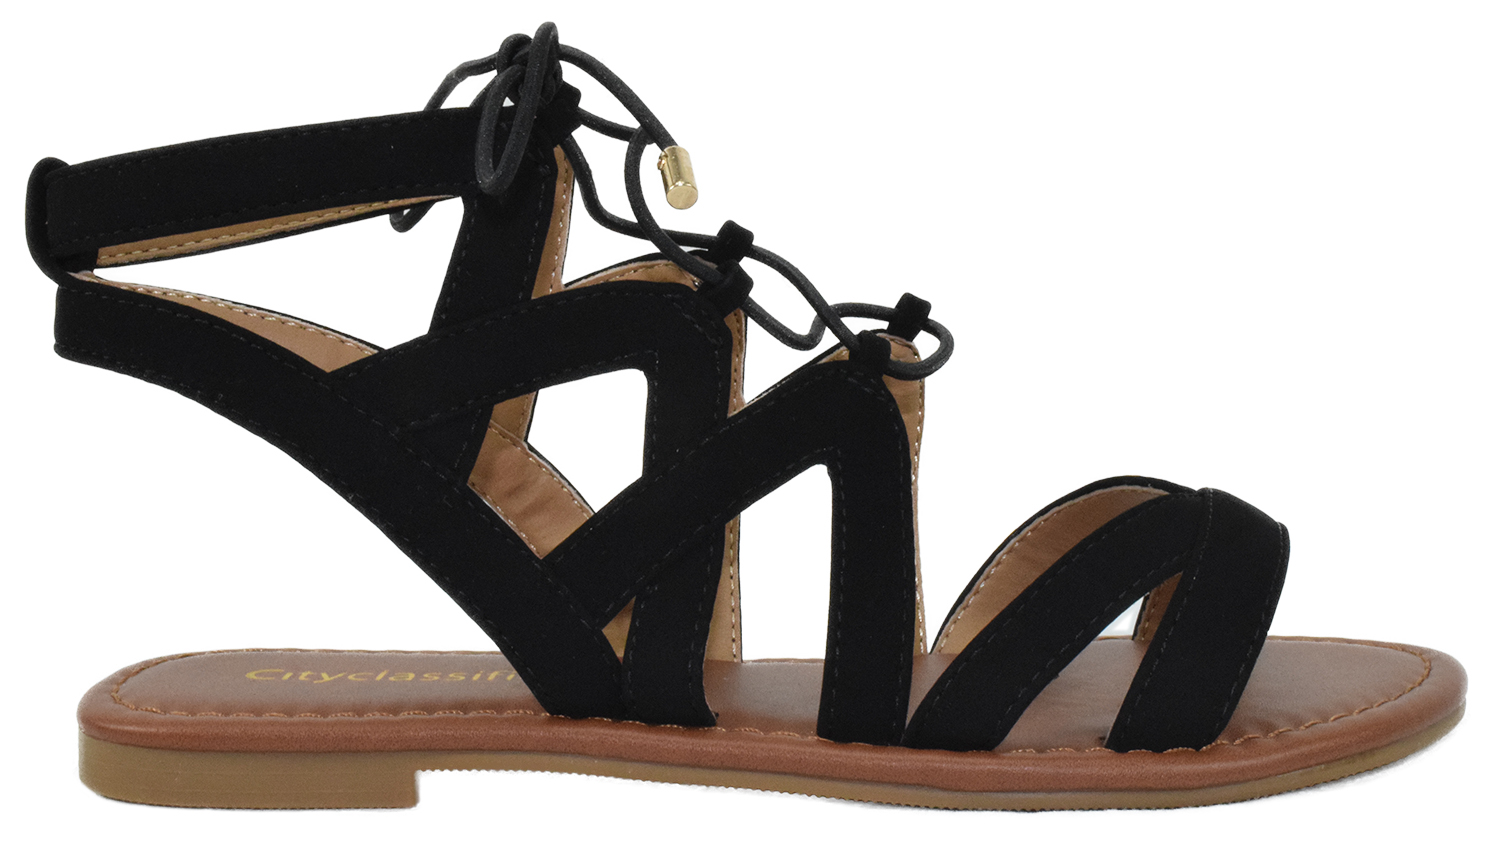 Details about  /City Classified Women Gladiator Criss-Cross Cut Out Sandals Lace Up Tan CONVOY-S